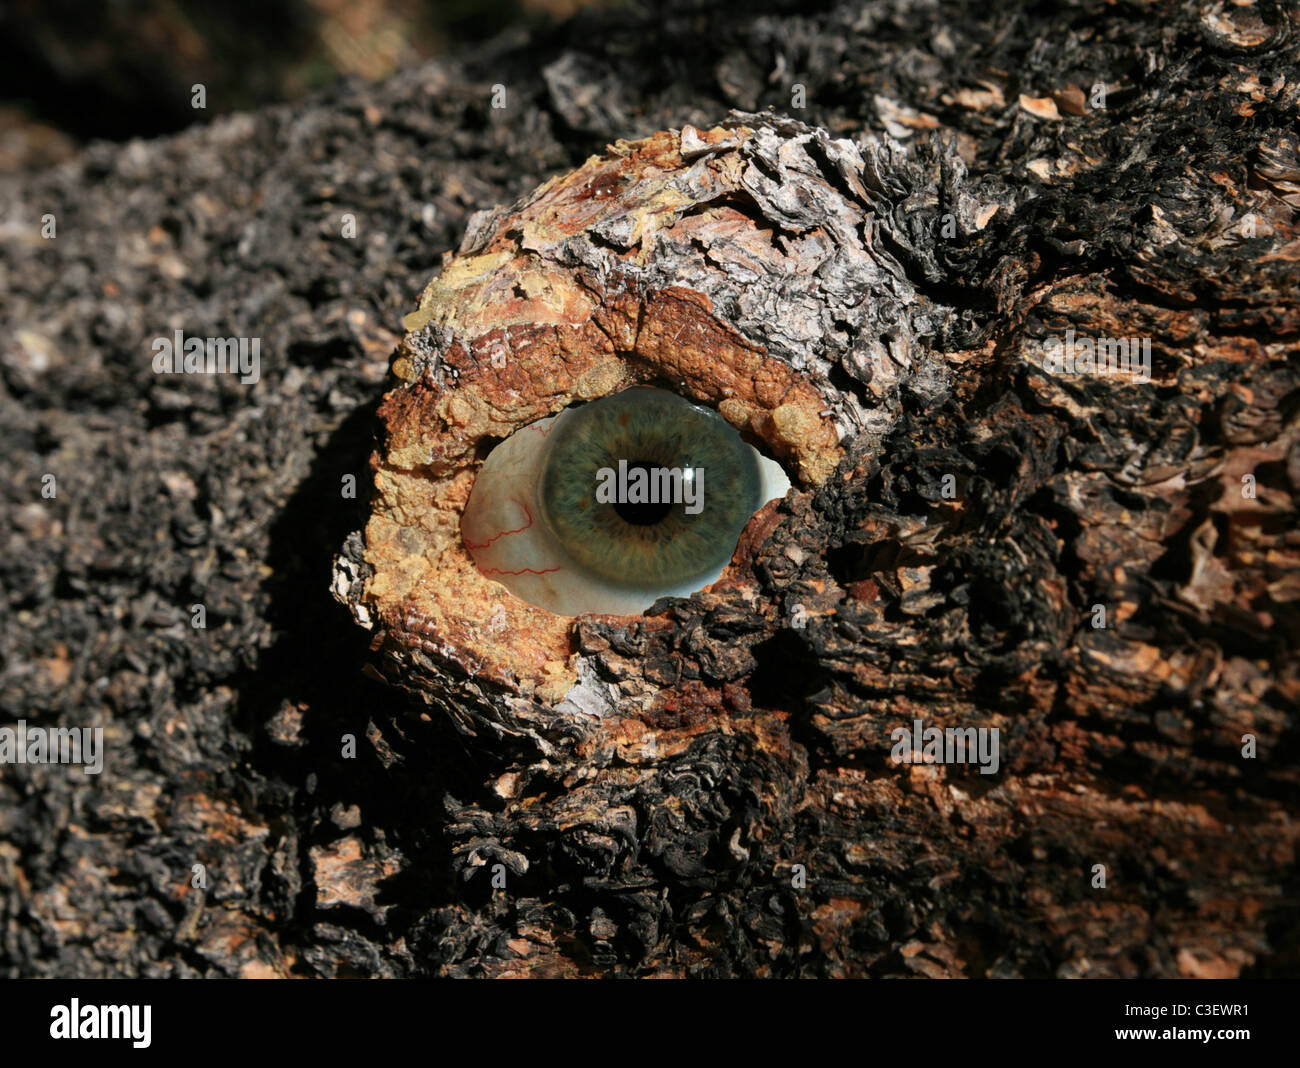 an eyeball inside a tree boll looking out - Stock Image